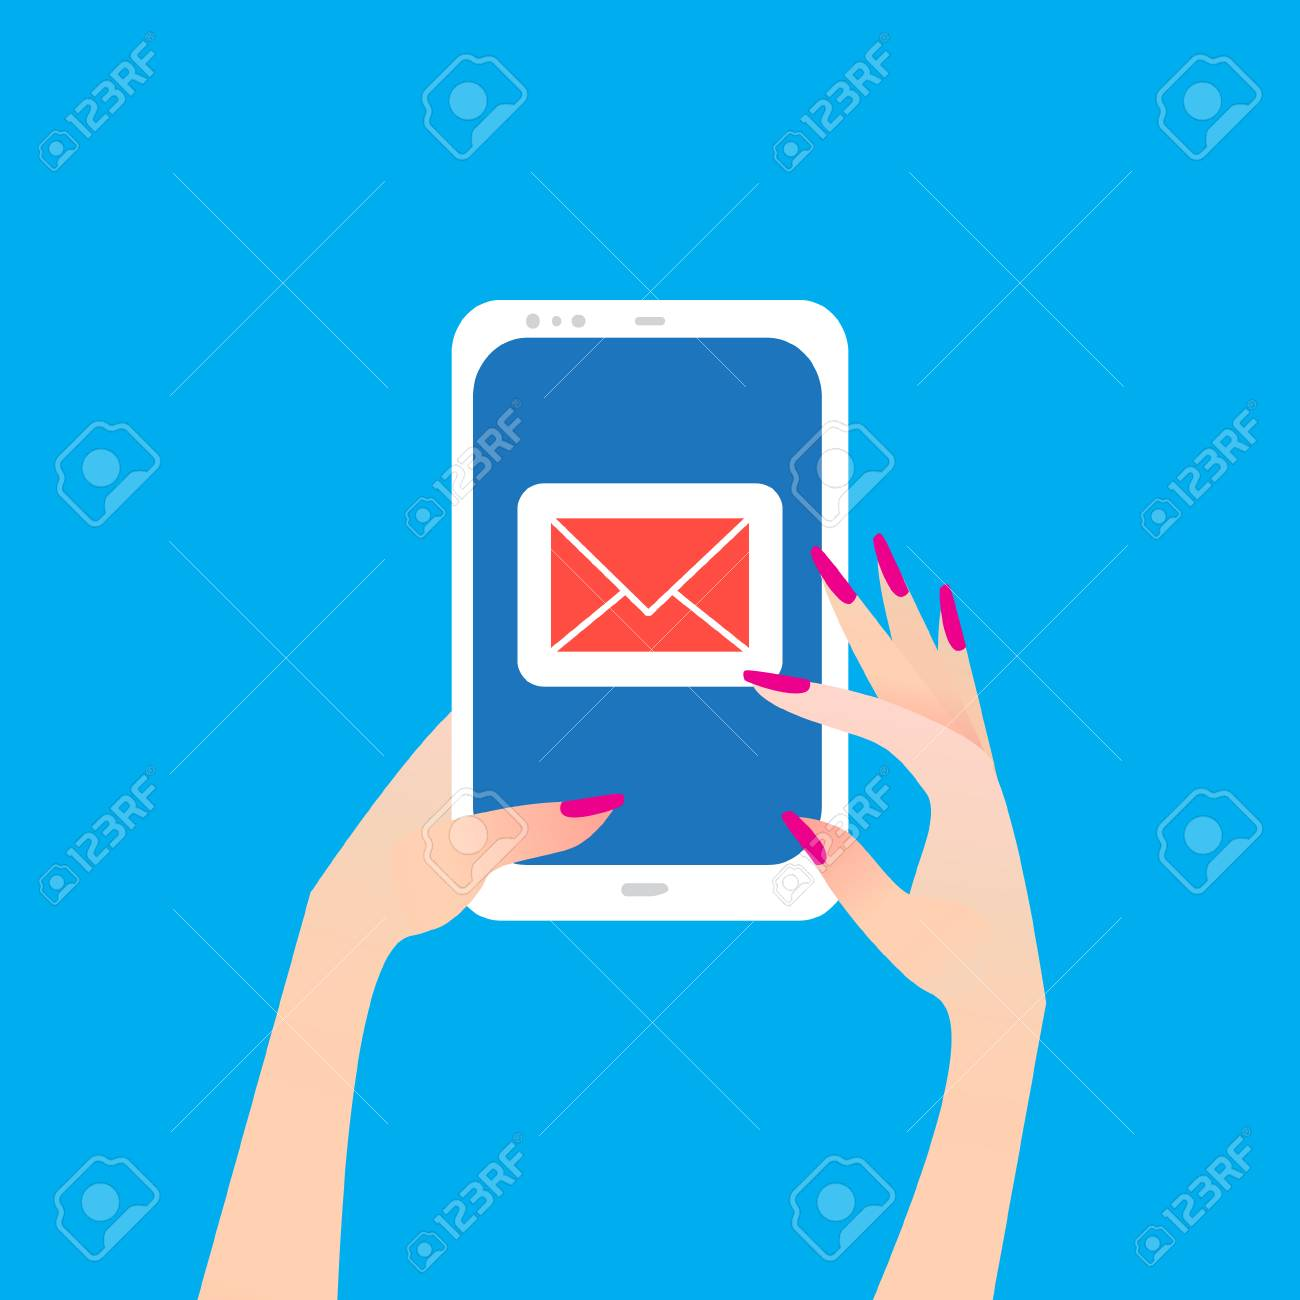 Womens Hand Holding Smart Phone With Email Symbol On The Screen